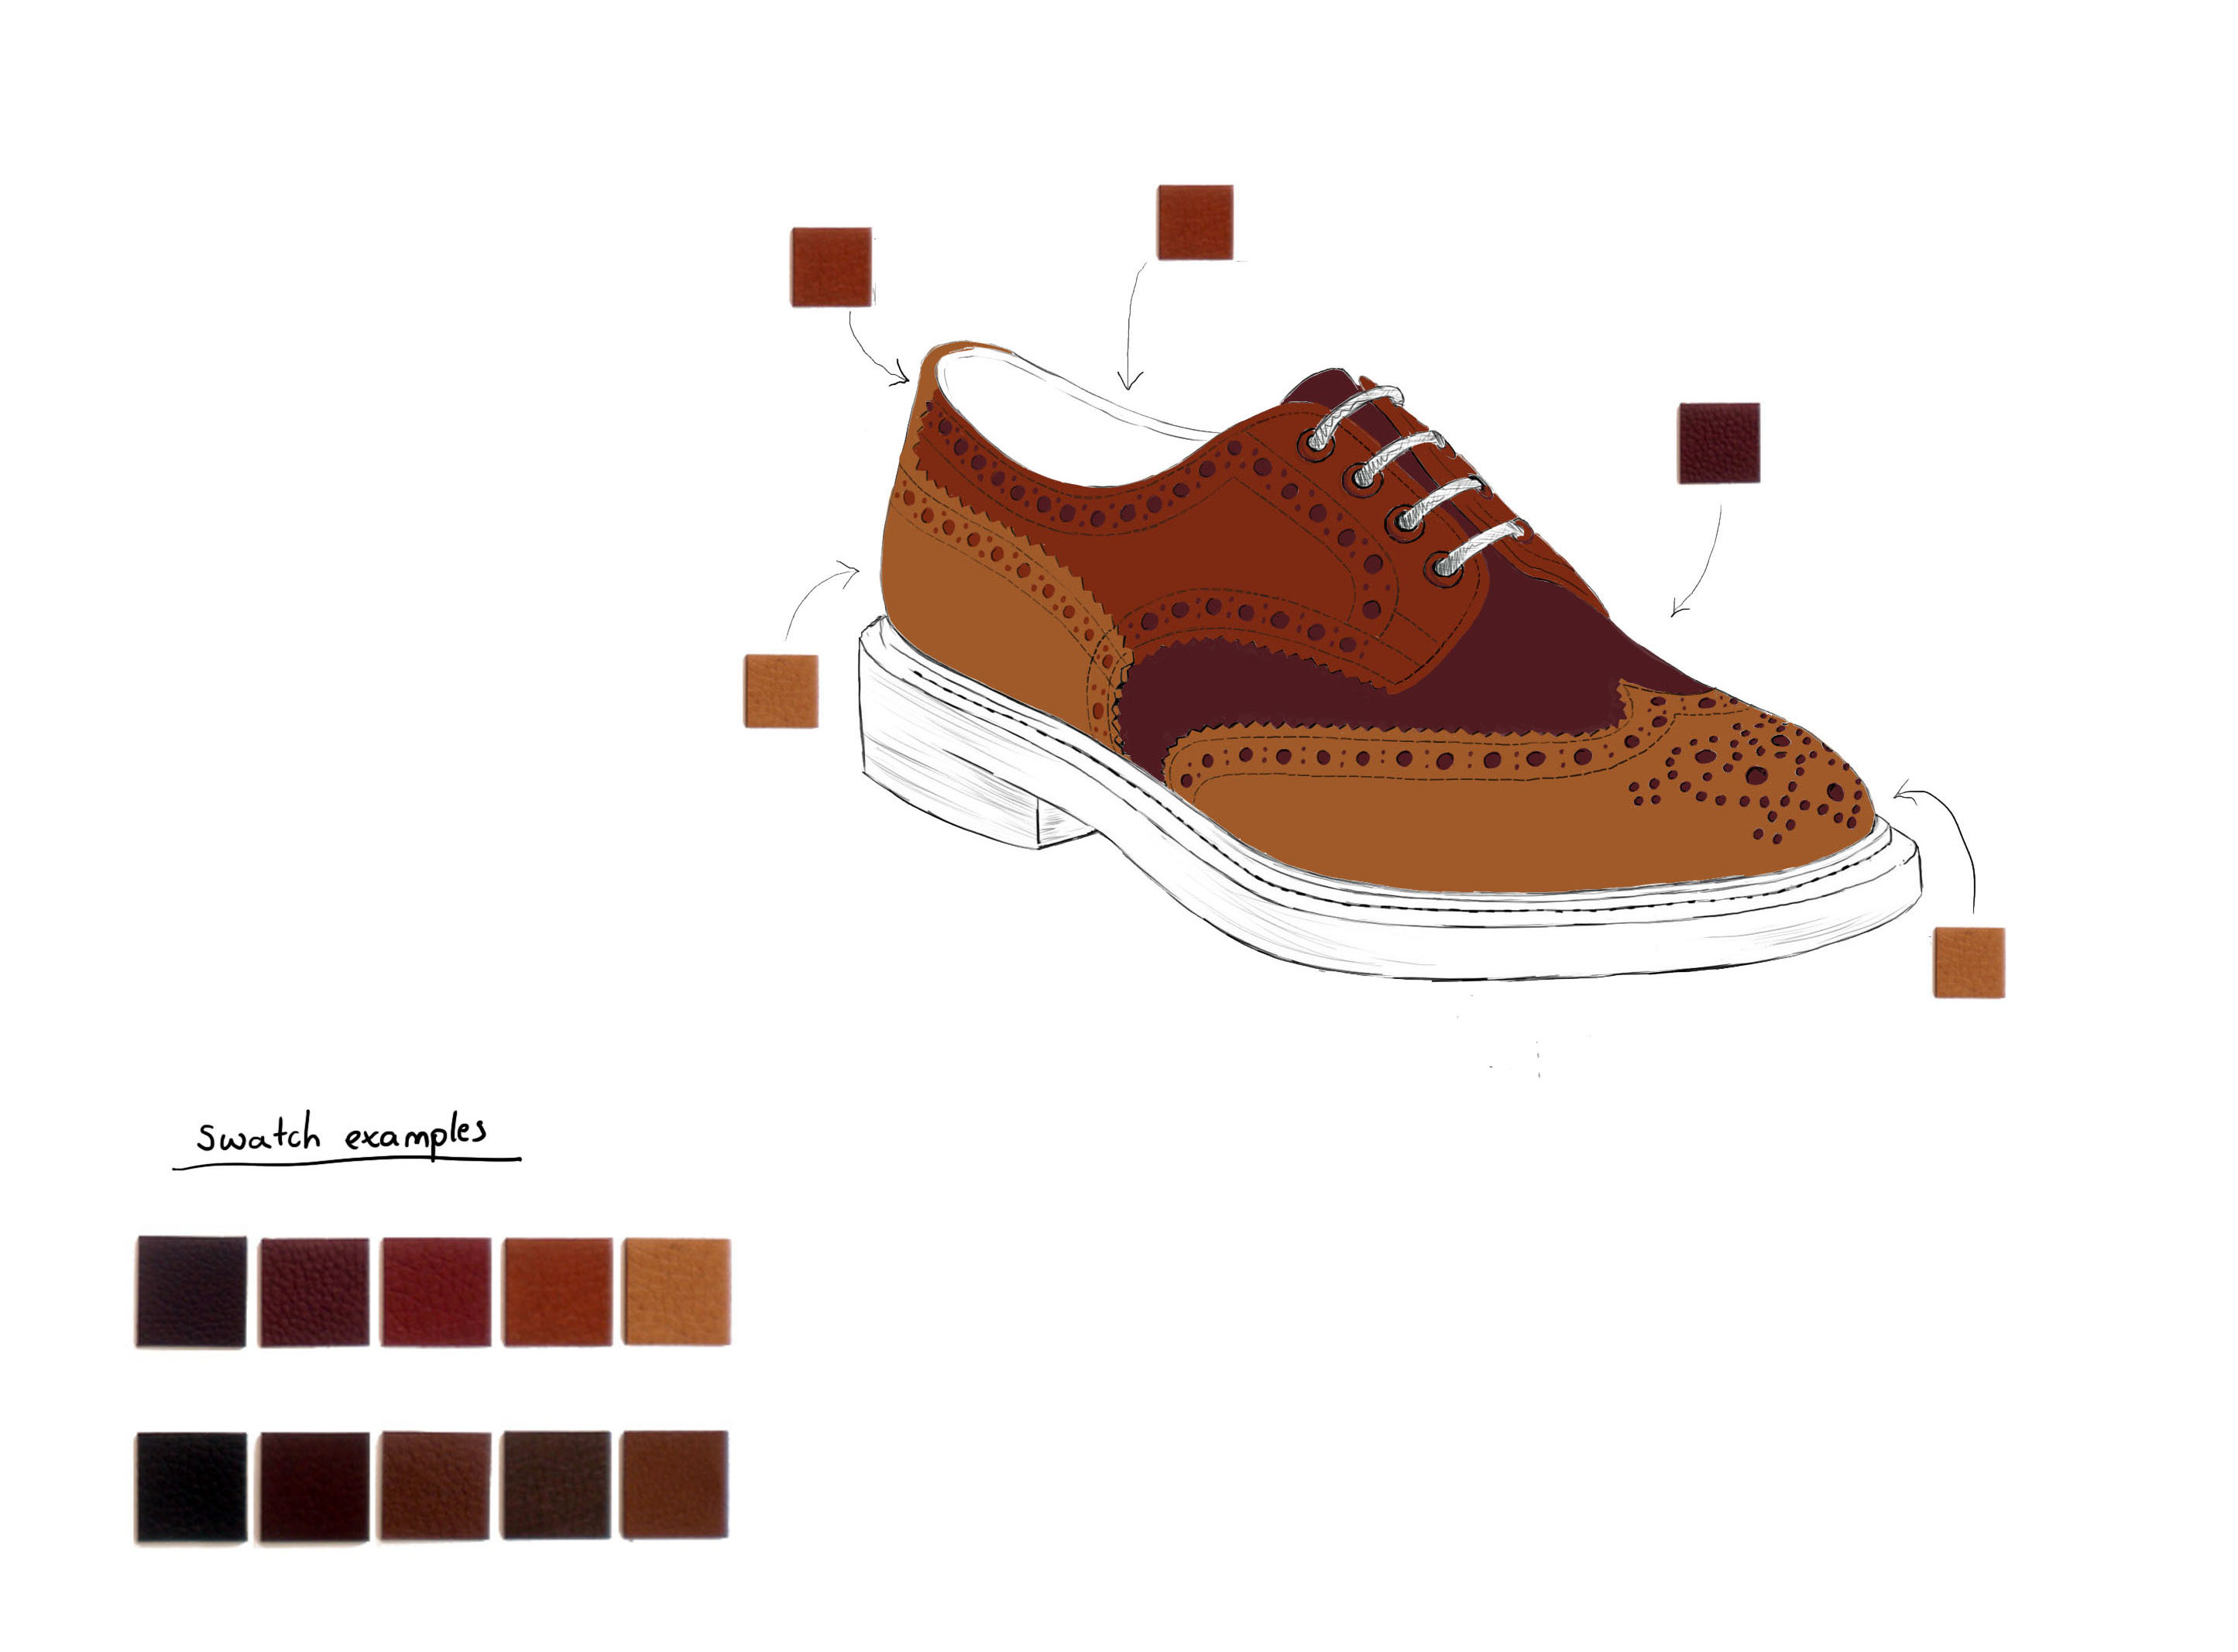 Gilbert & Bailey shoe sketch